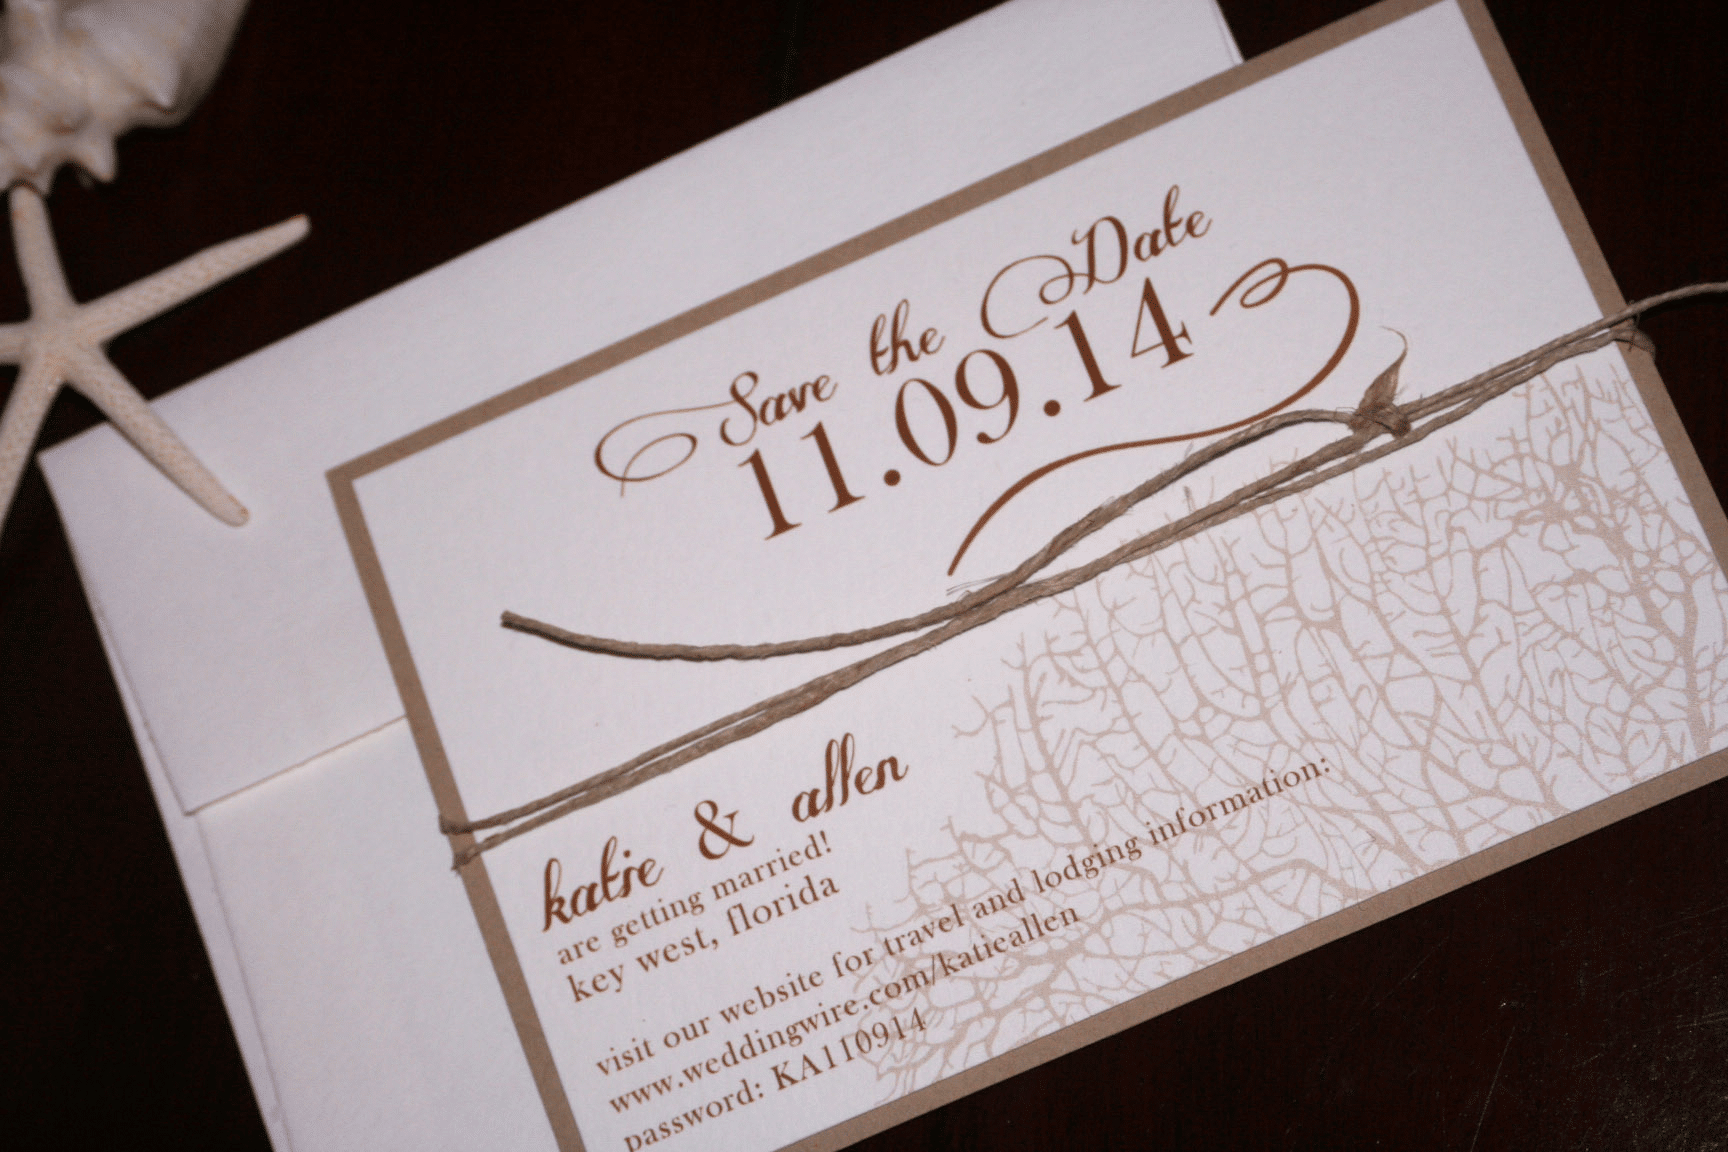 Save the Date - Too Chic & Little Shab Design Studio, Inc.